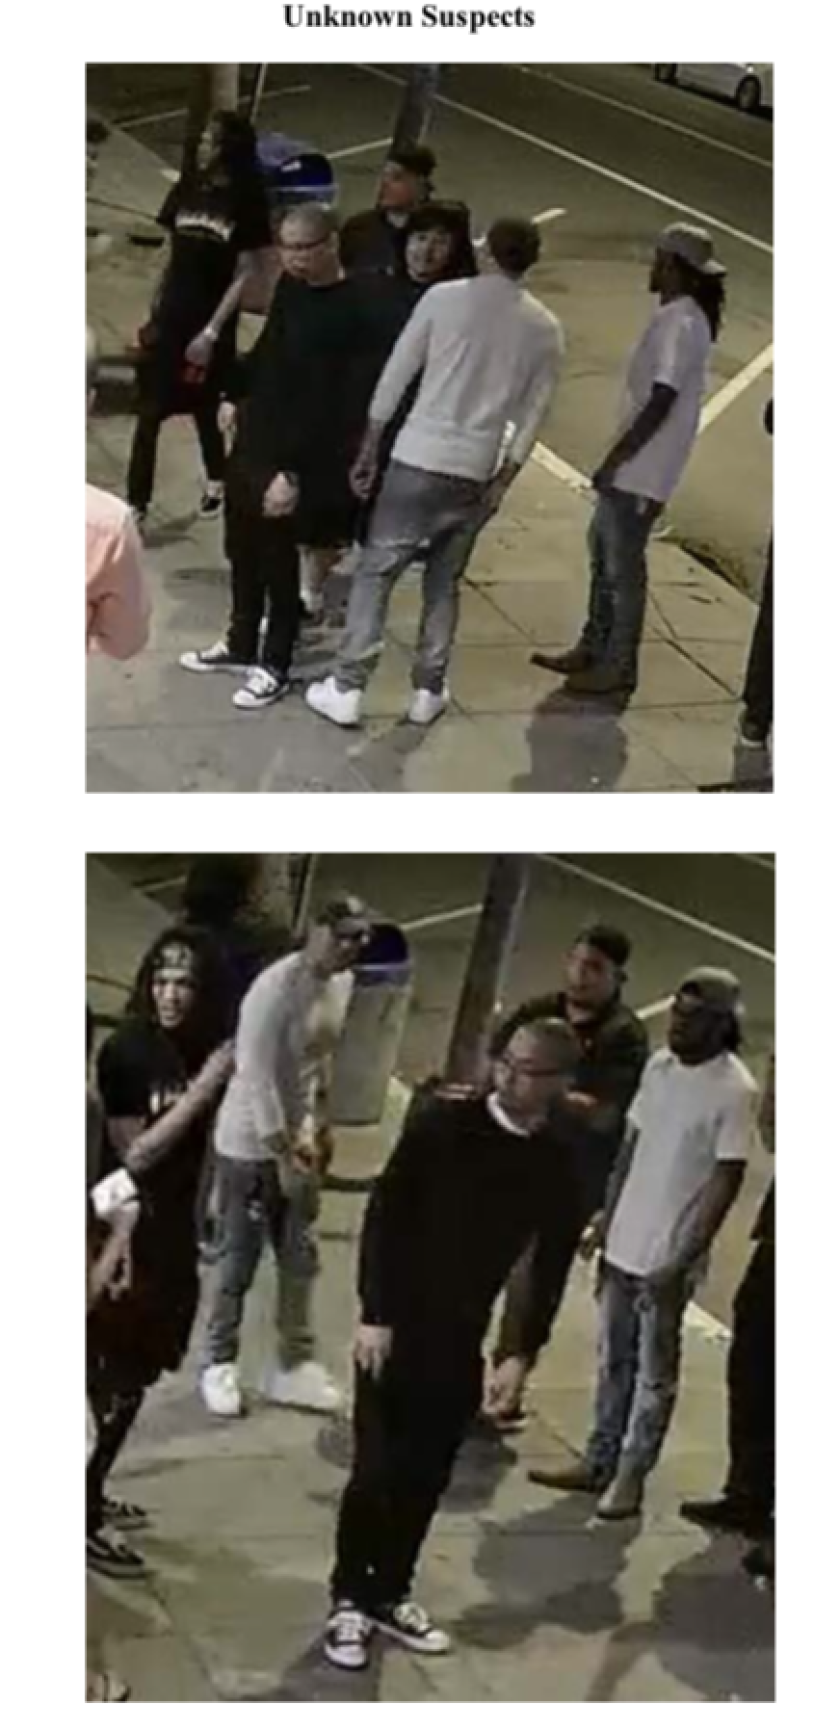 Police searching for group of men involved in Pacific Beach assault